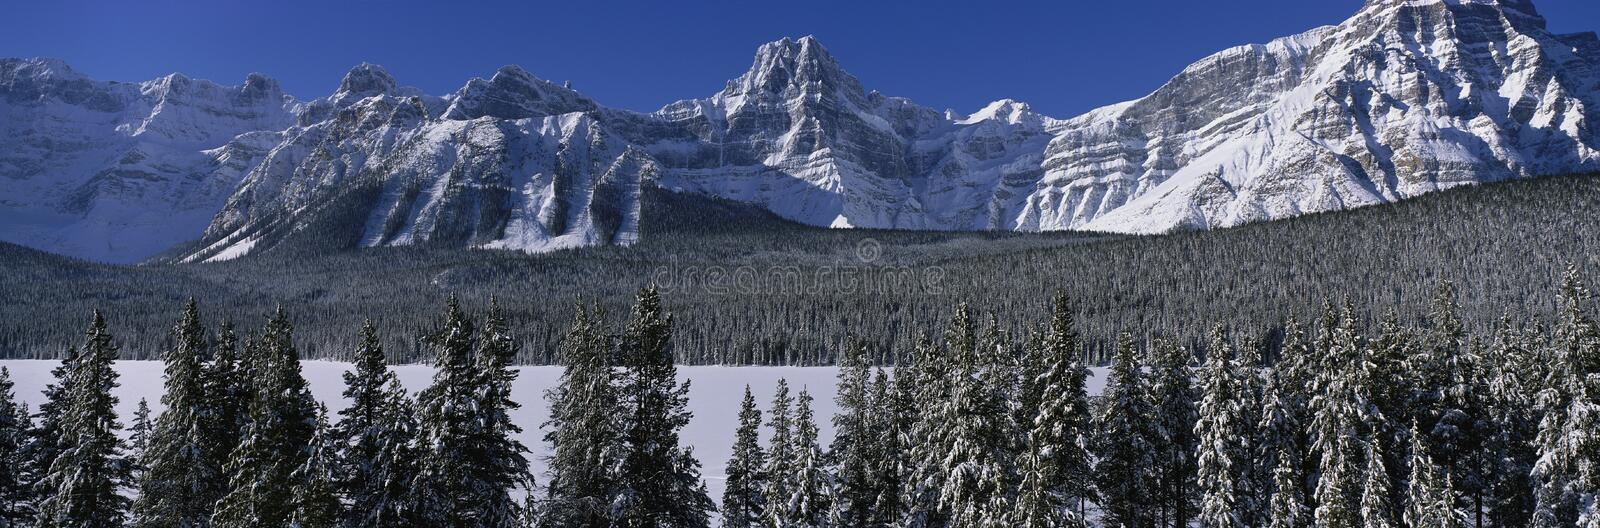 Rocky Mountains in winter, Canada stock photography